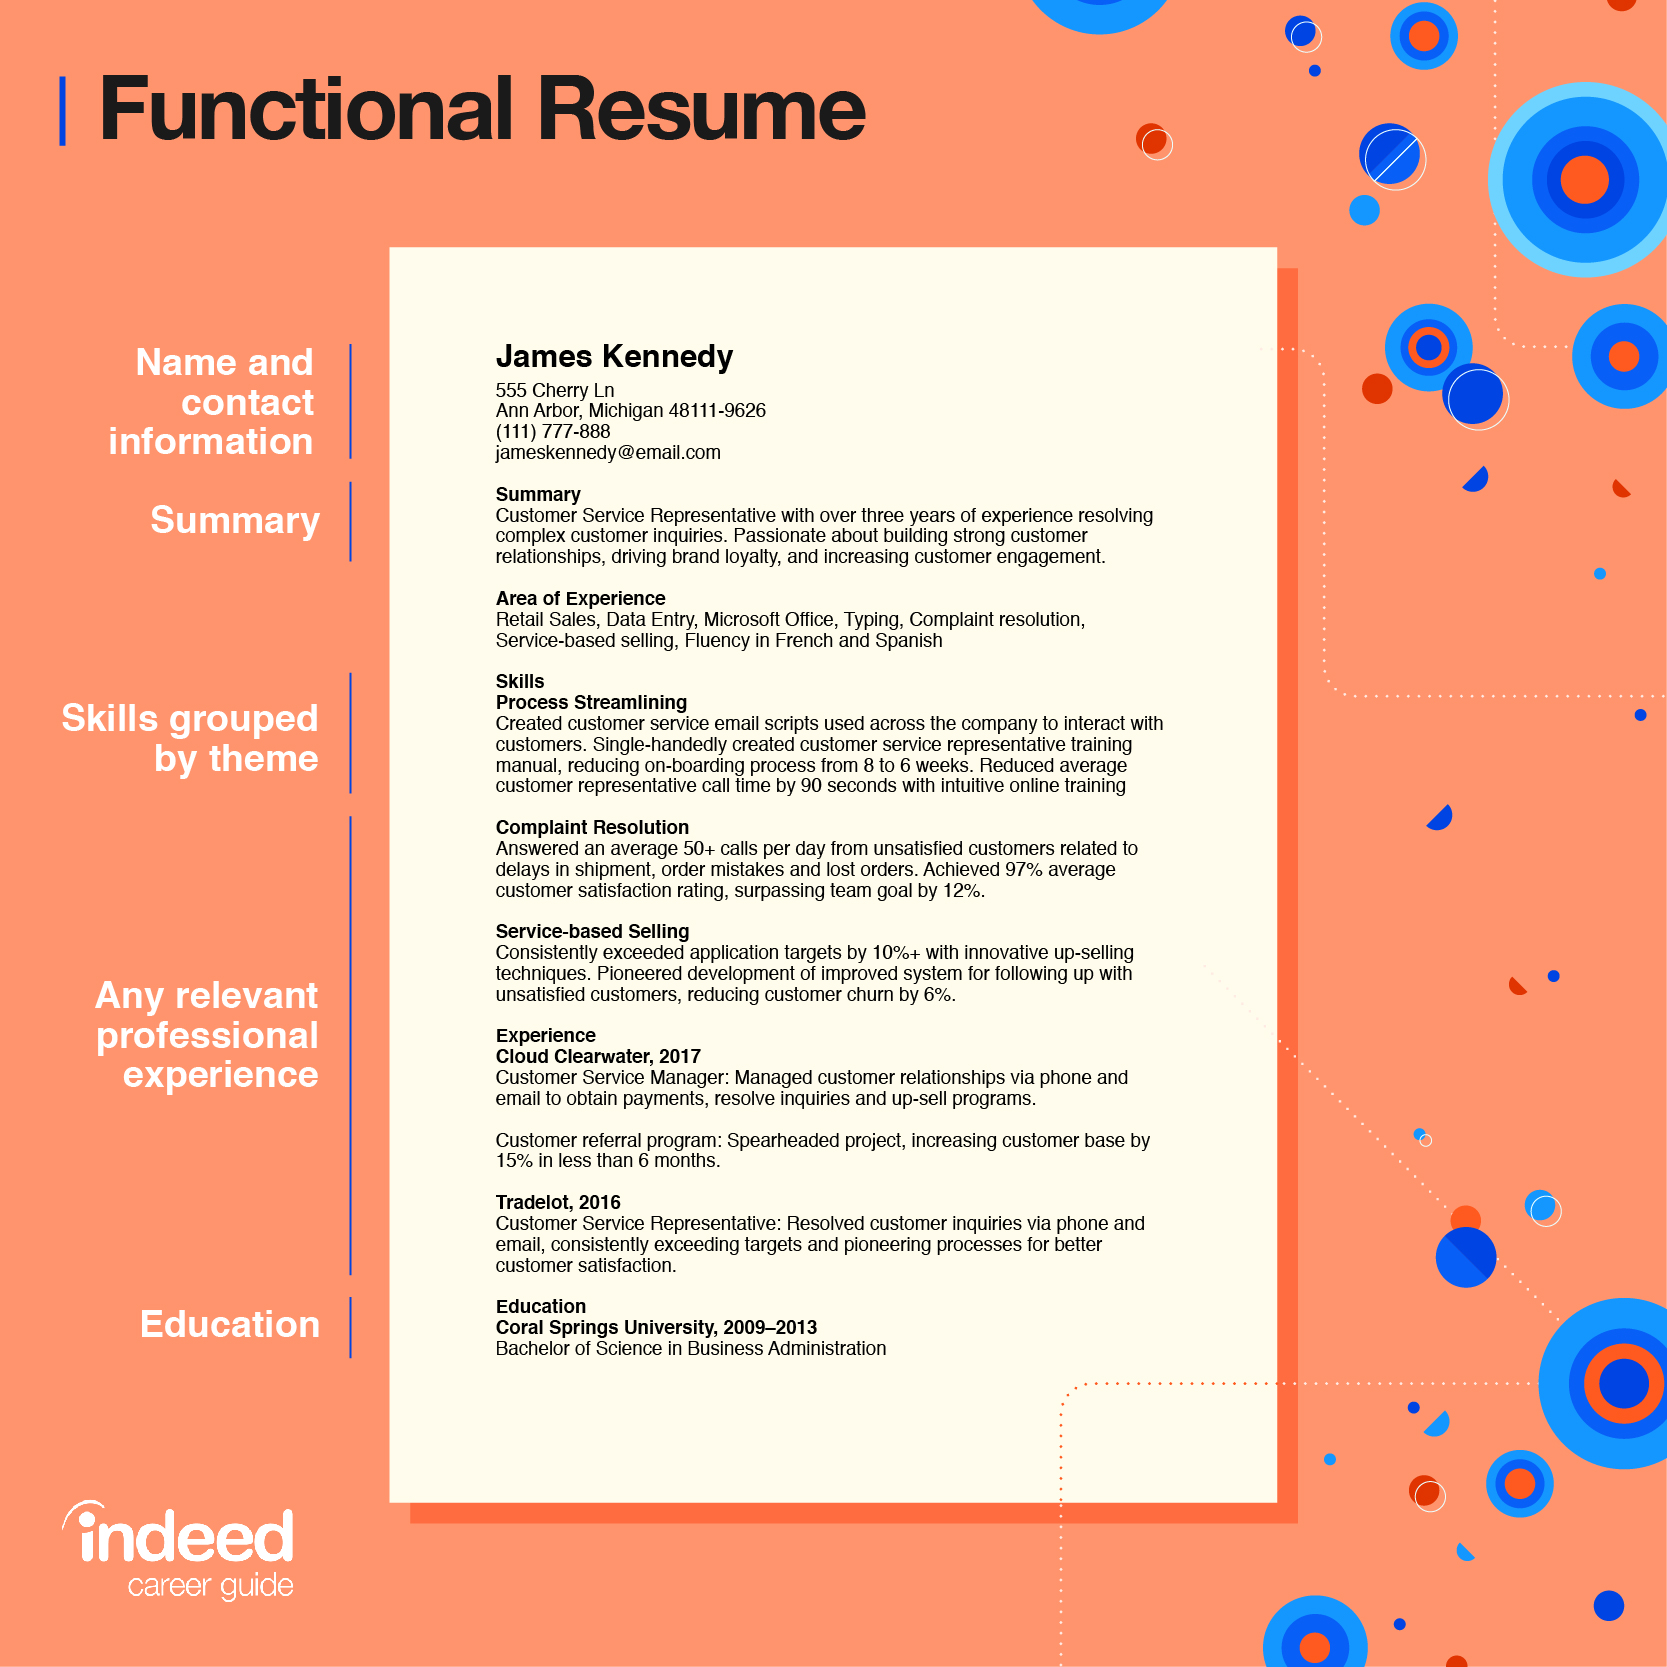 10 best skills to include on a resume  with examples